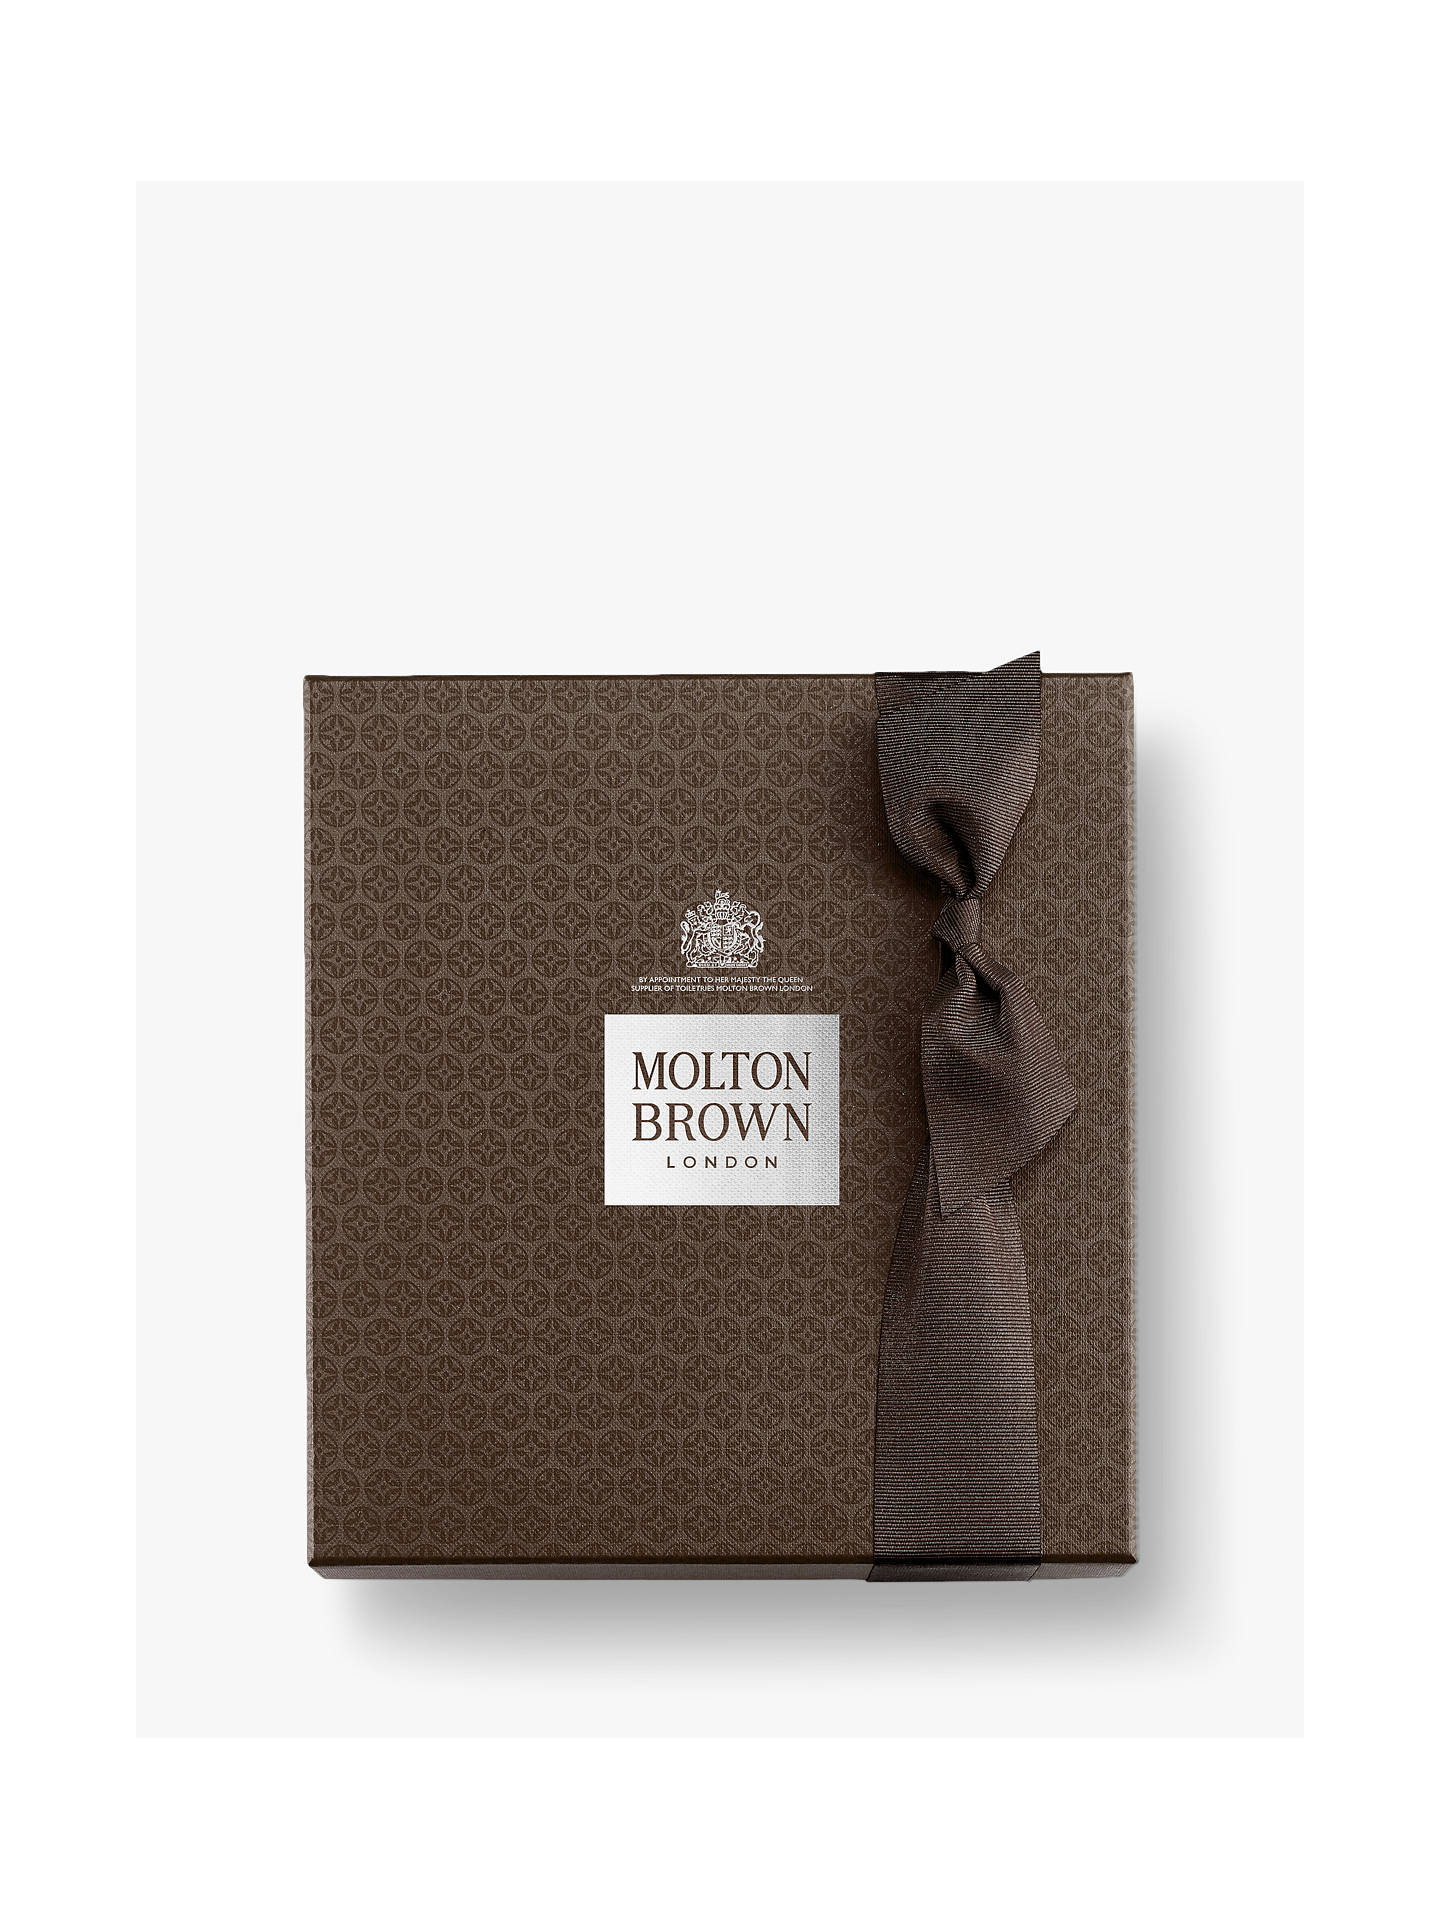 ... BuyMolton Brown Re-Charge Black Pepper Bathing Gift Set Online at johnlewis.com ...